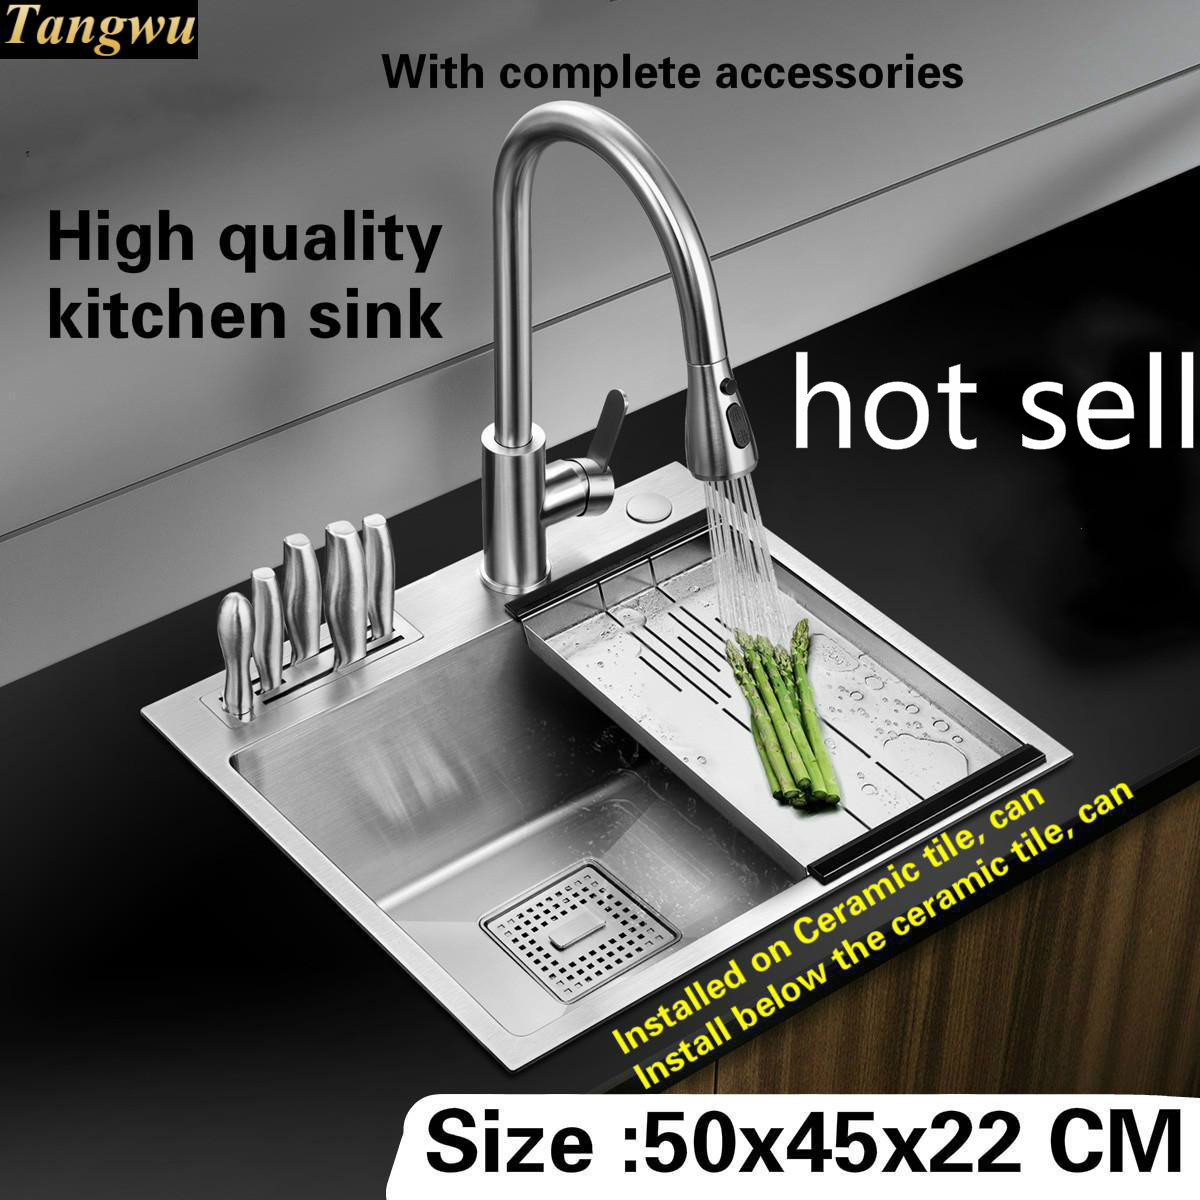 Tangwu High quality food grade 304 stainless steel kitchen sink 4 mm small single slot by hand durable 50x45x22 CM